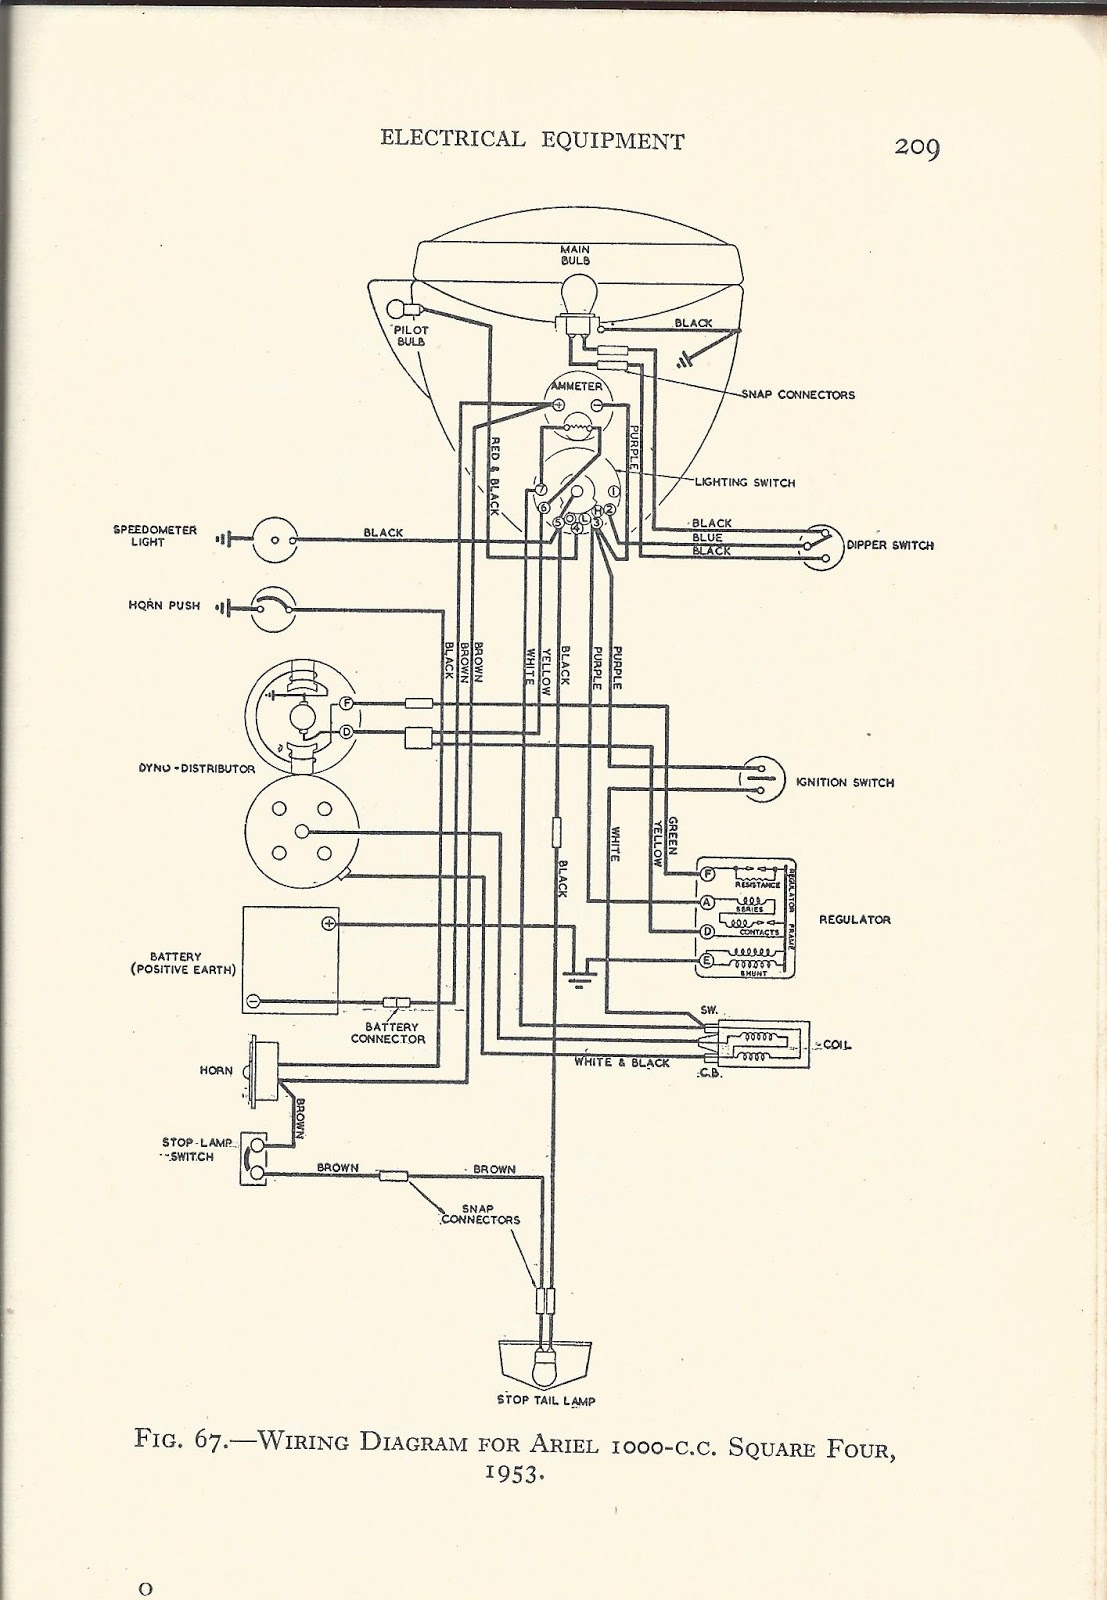 Amelia Squariel Motorcycle Wiring Images Of What Is The Diagram For A 1953